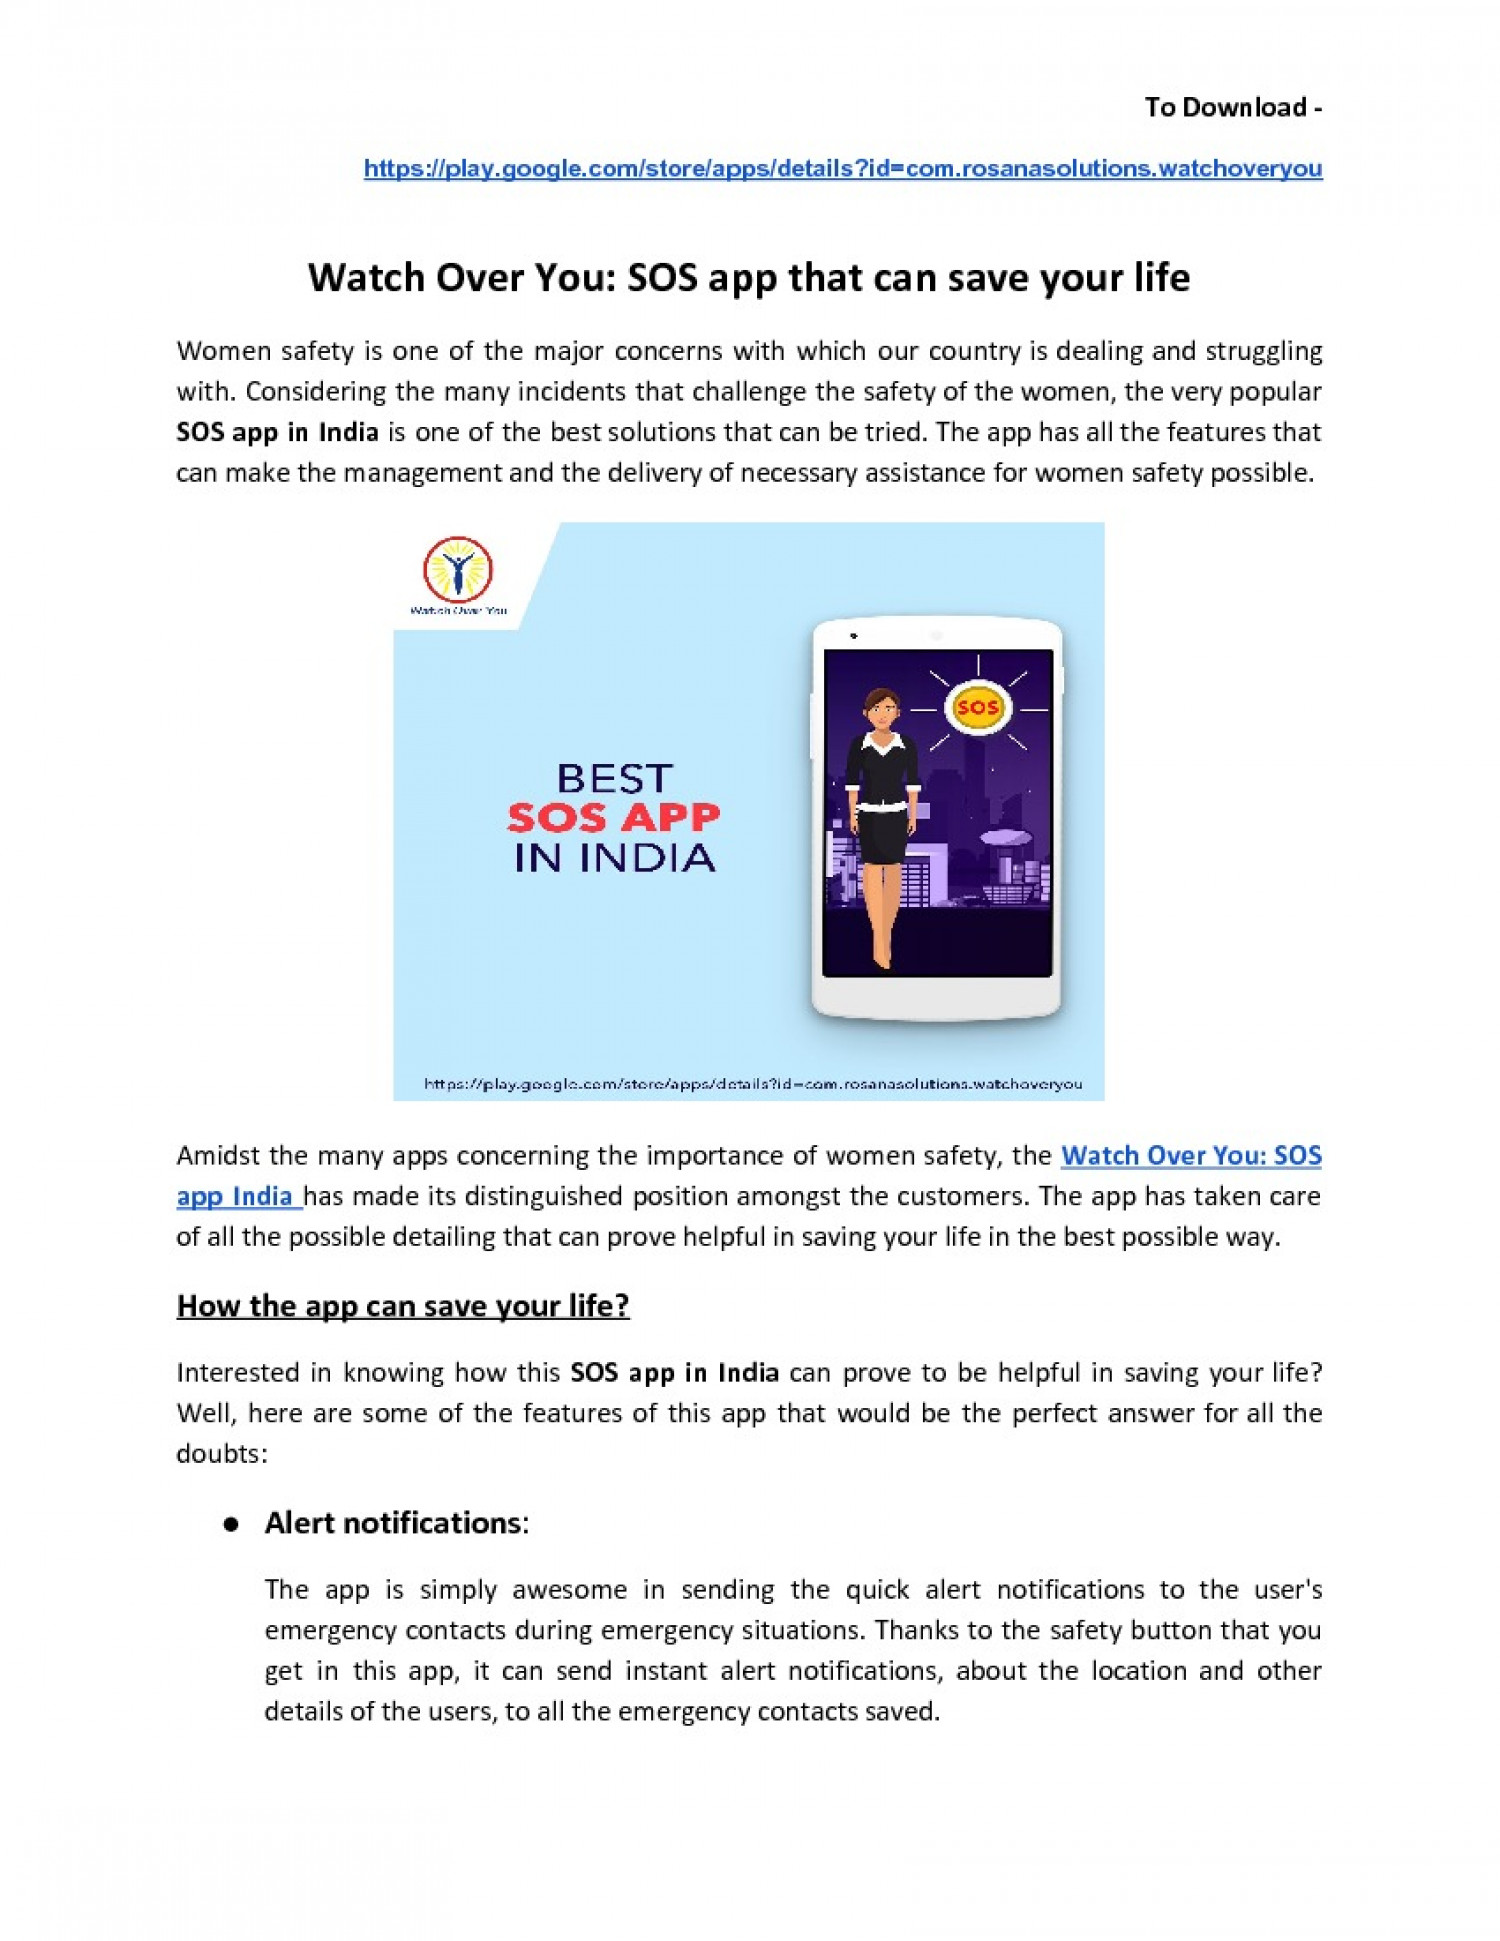 Watch Over You: SOS App that can save your life Infographic